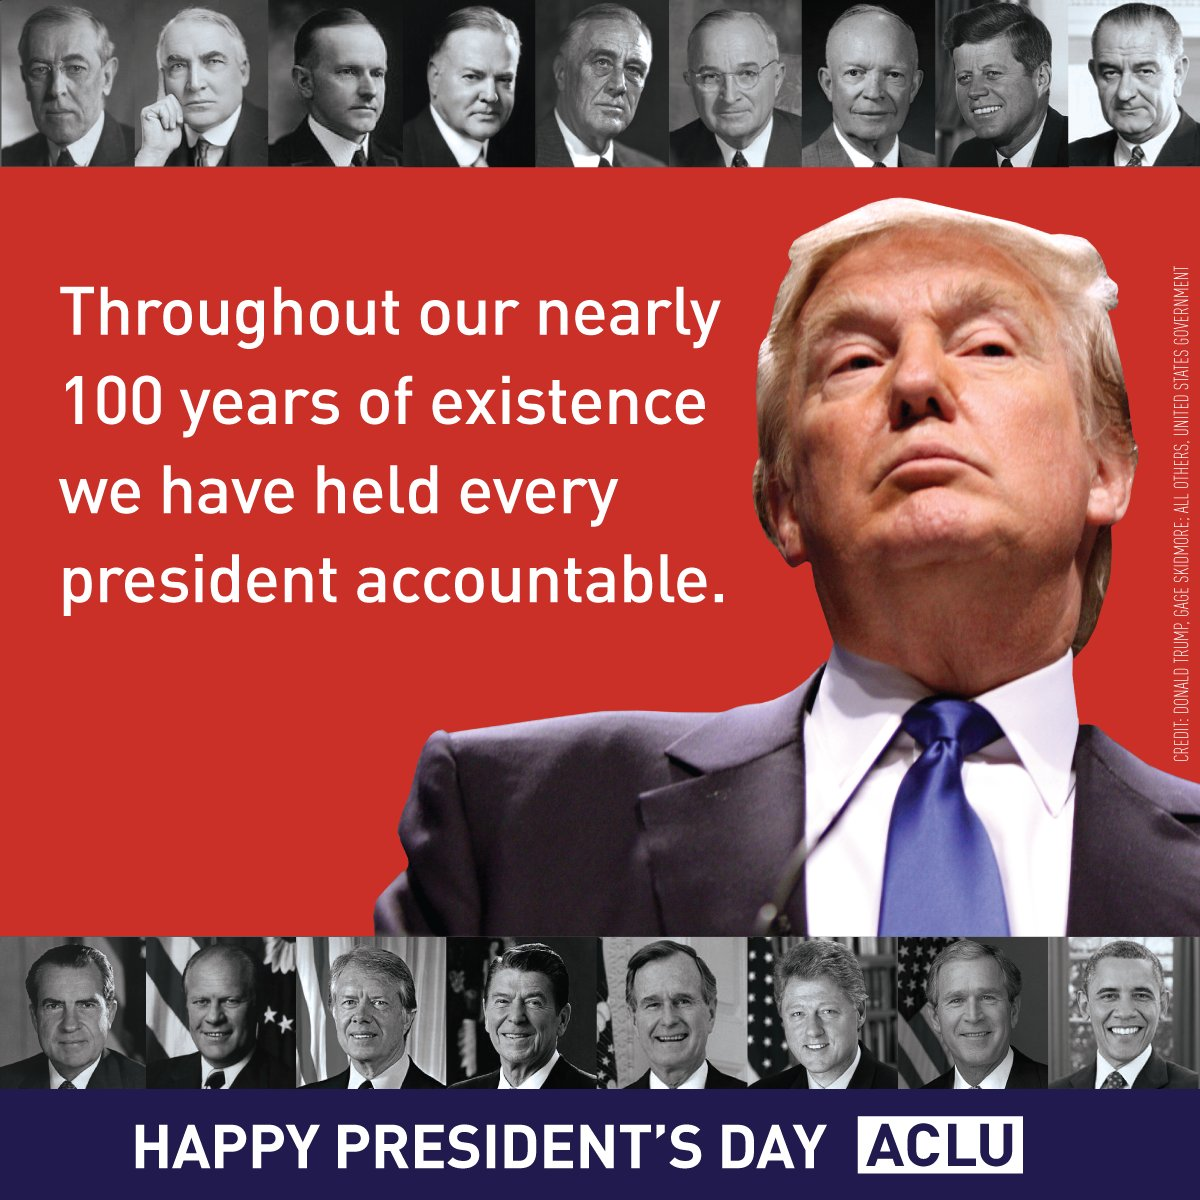 Happy President's Day from the ACLU. https://t.co/p0WfuXRo1X